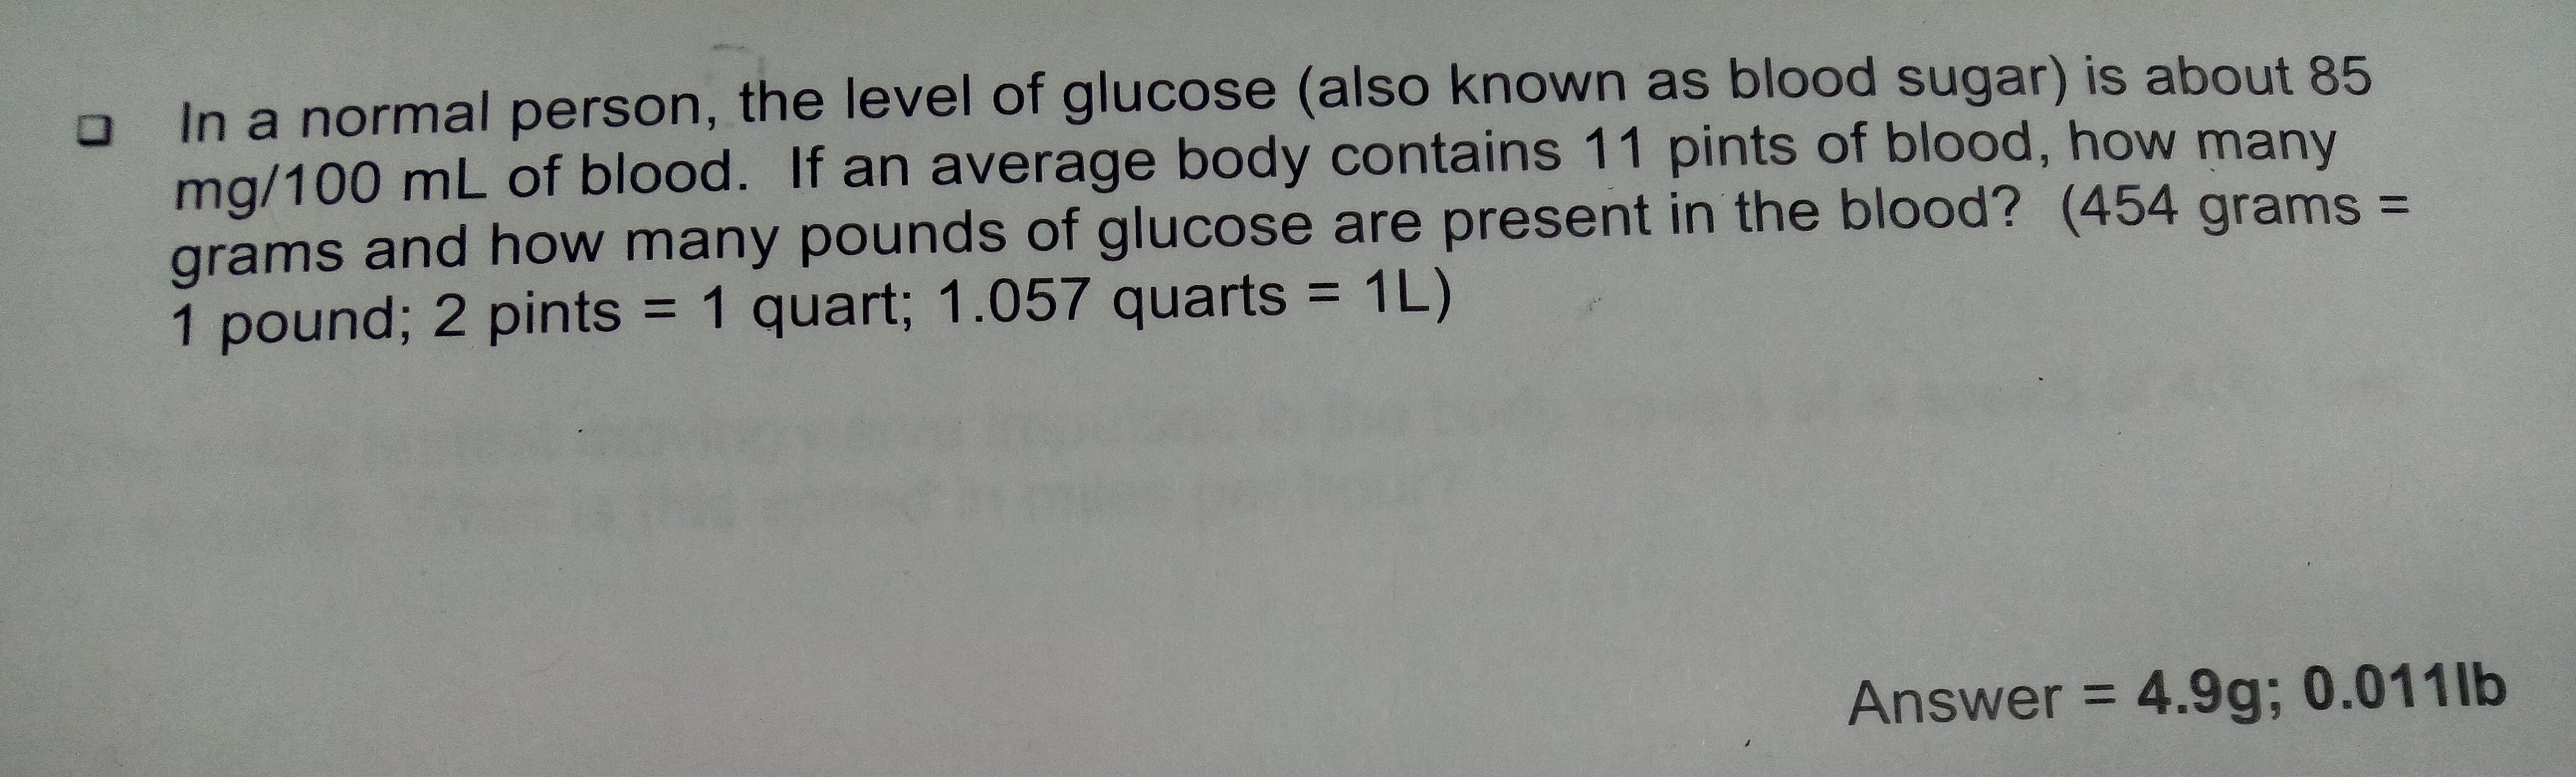 In a normal person, the level of glucose (also known as blood sugar) is about 85 mg/100 mL of blood. If an average body contains 11 pints of blood, how many grams and how many pounds of glucose are present in the blood? (454 grams = pound; 2 pints = 1 quart; 1.057 quarts 1L) 1 Answer 4.9g; 0.011 lb